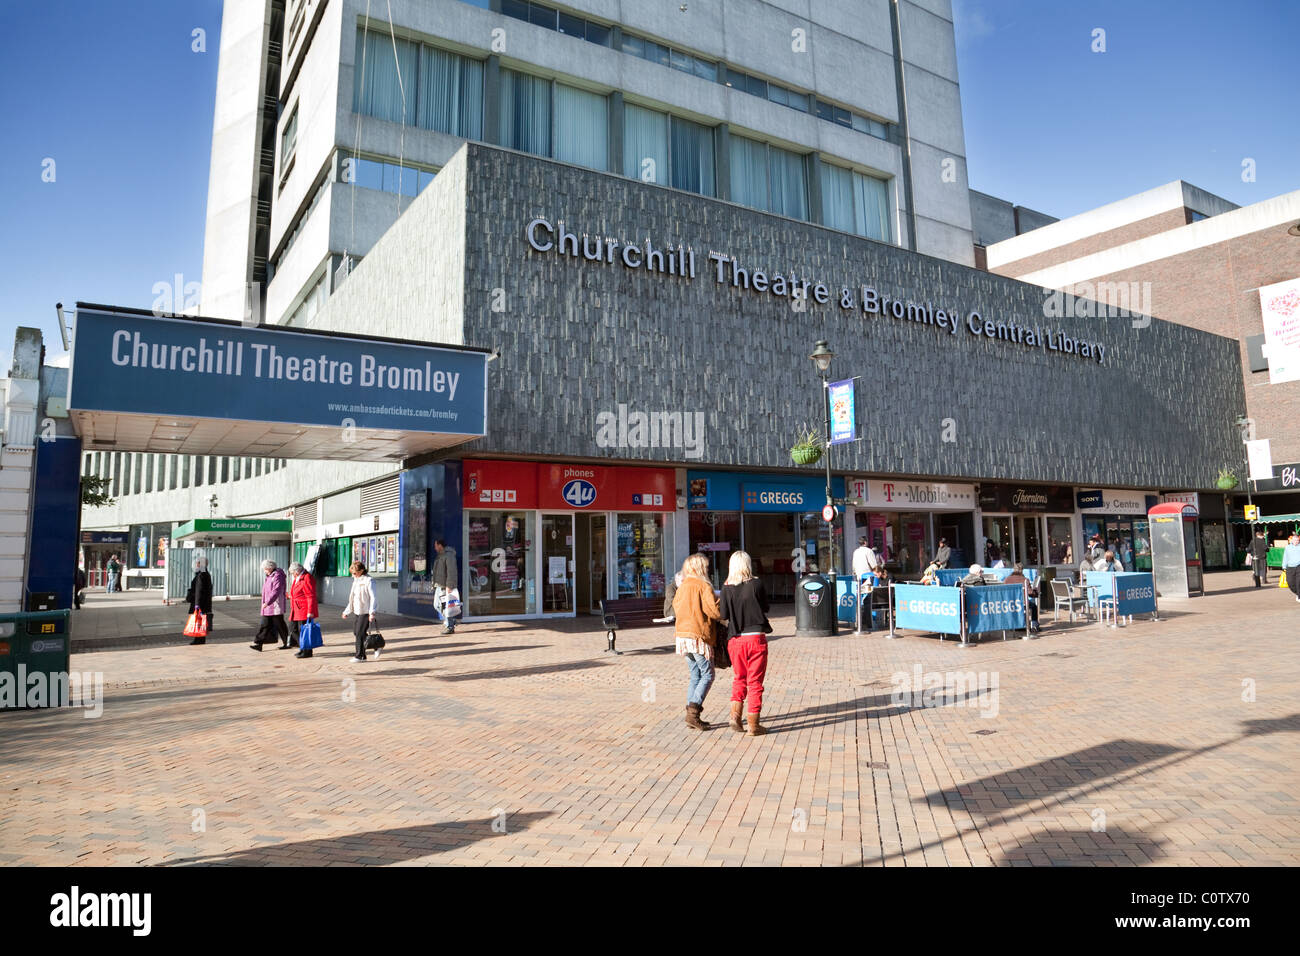 Bromley high street bromley kent uk stock photo for The bromley